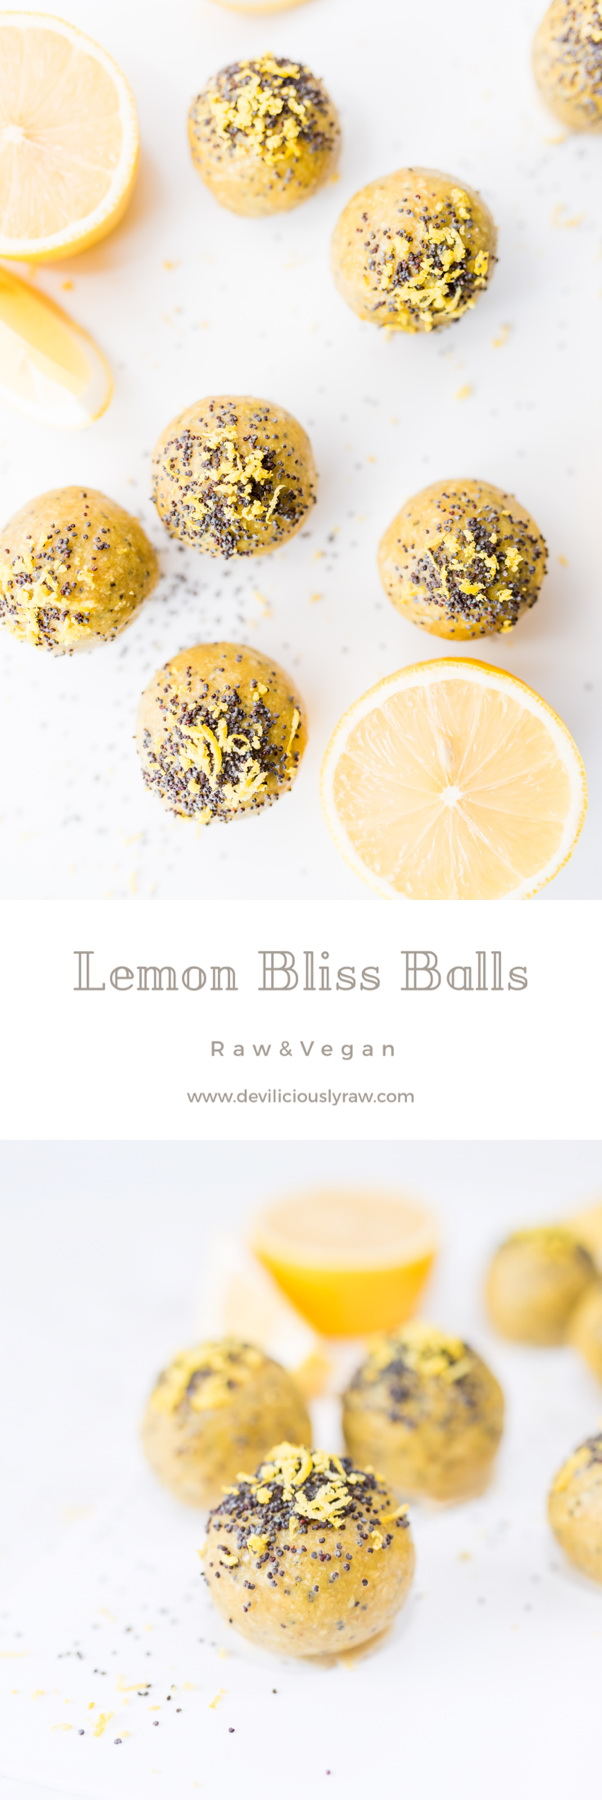 #raw #vegan Lemon Bliss Balls from Deviliciously Raw